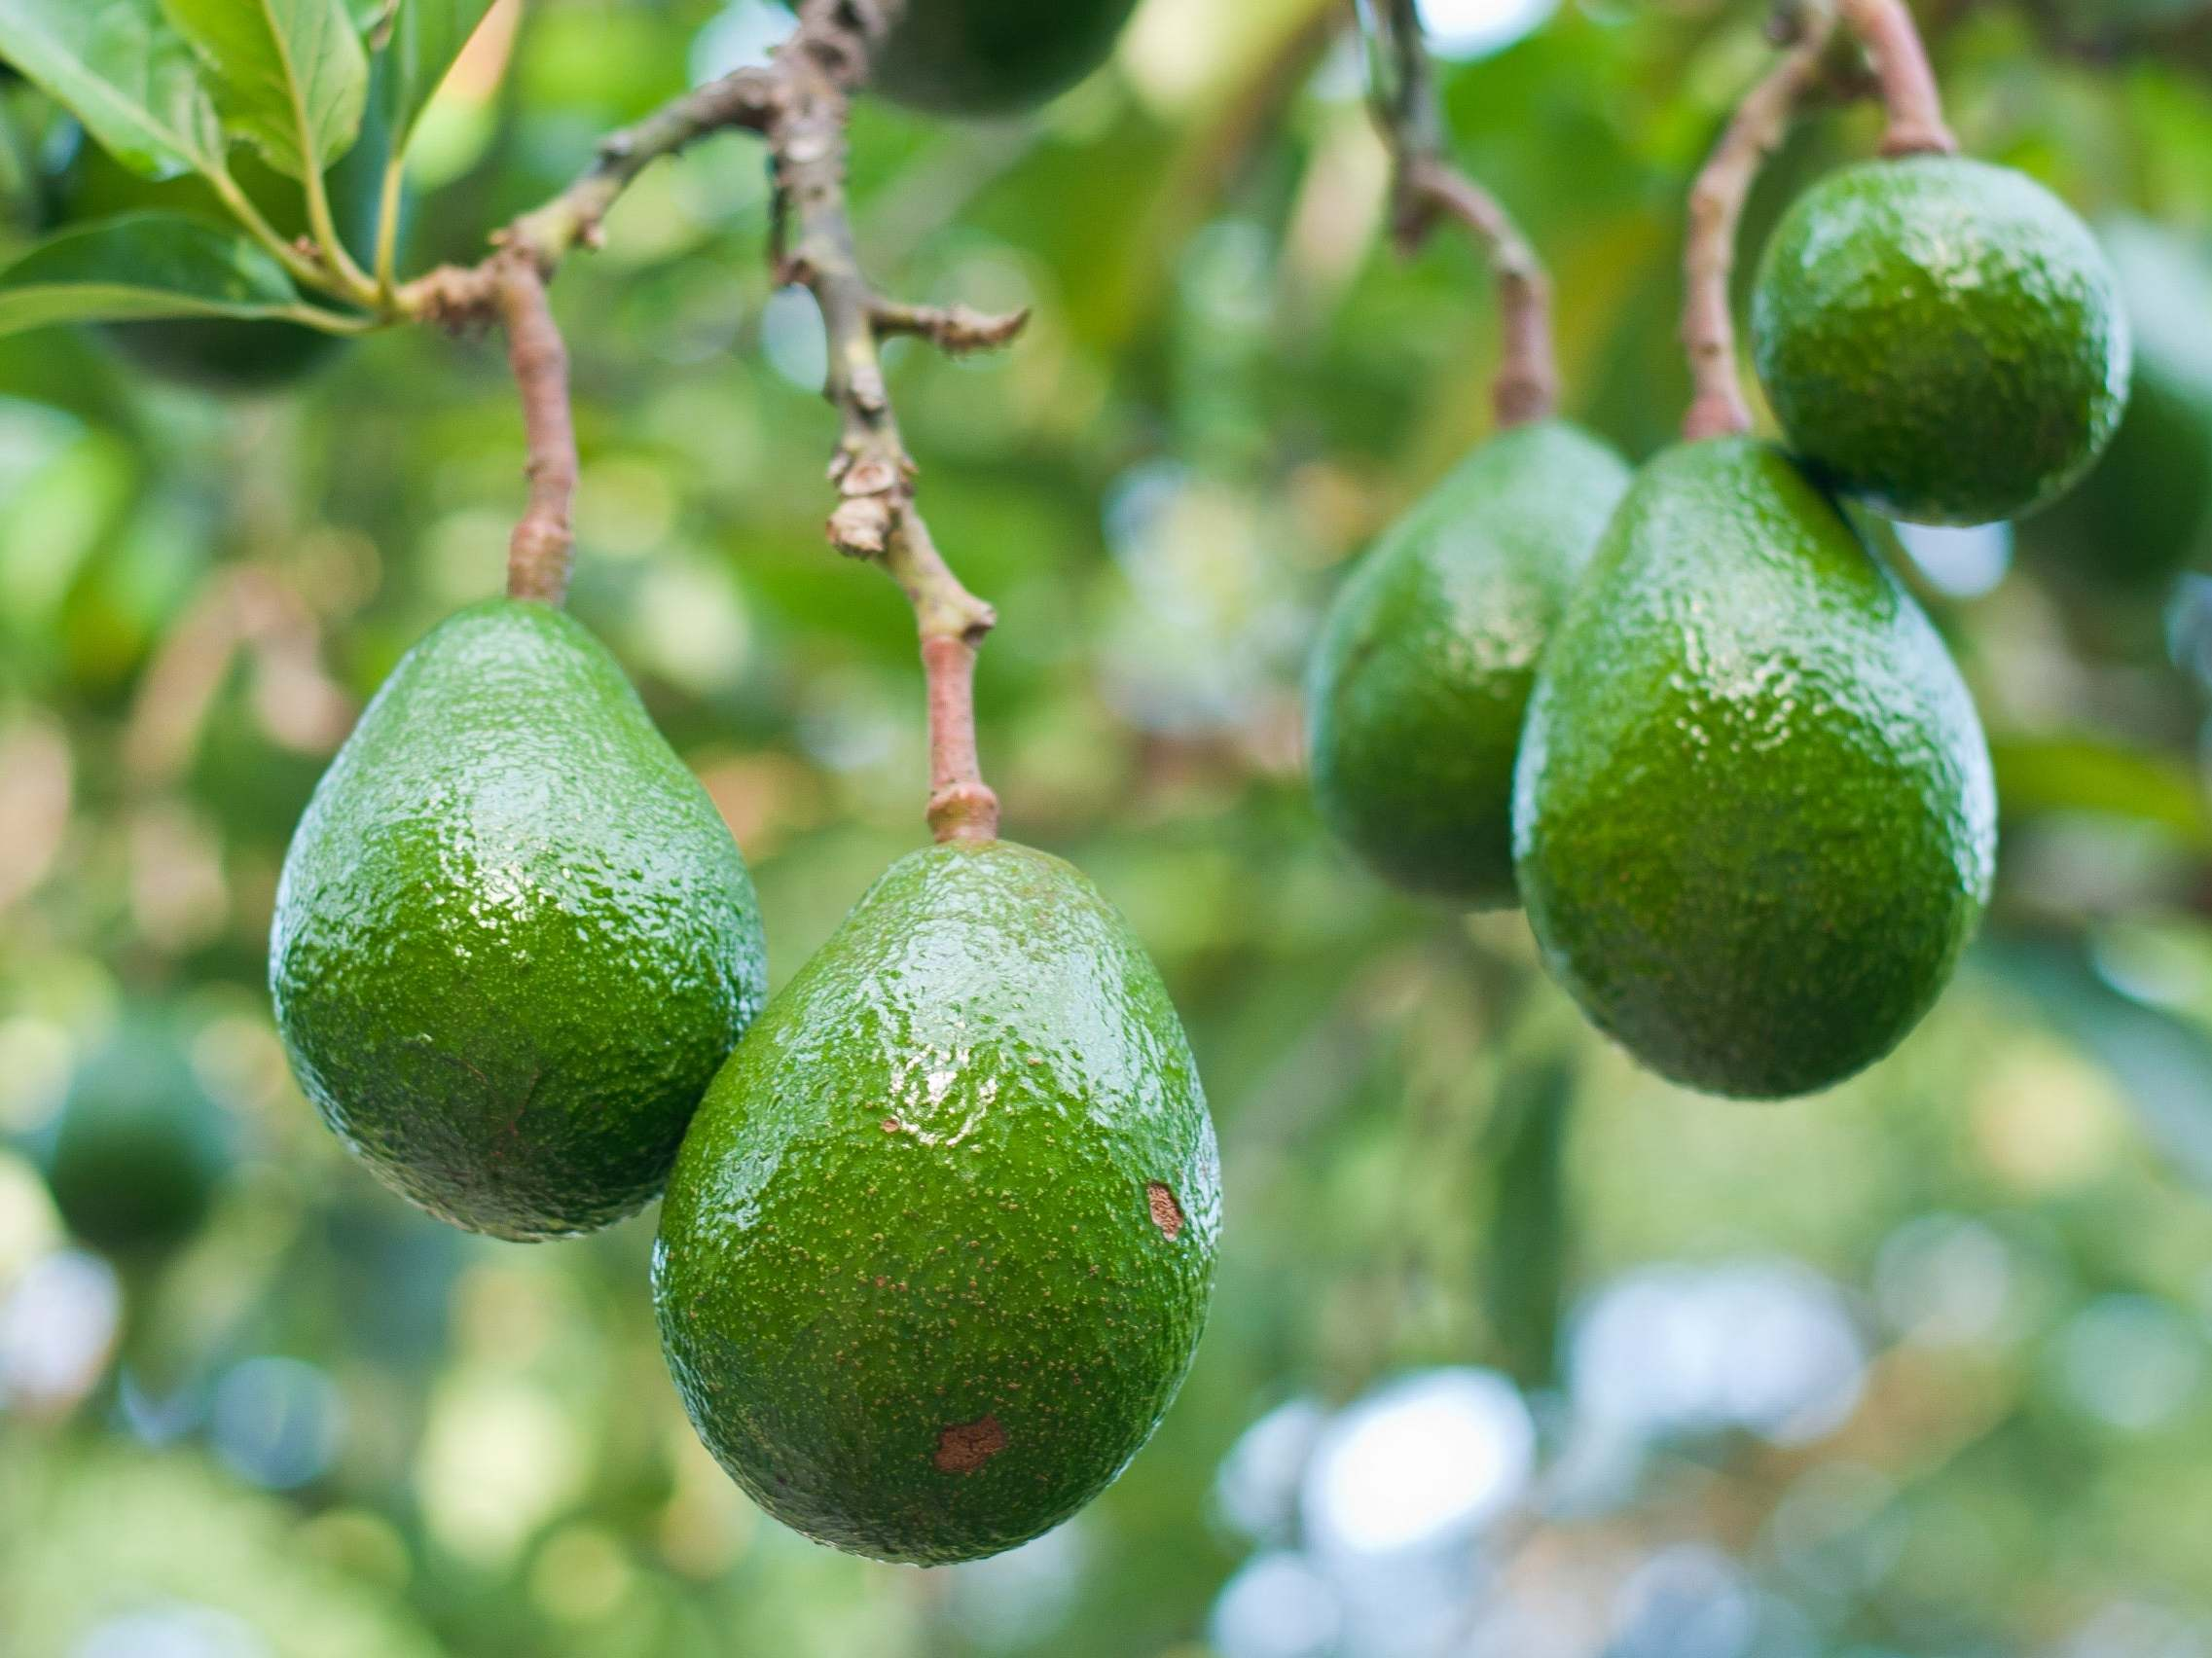 avocados - latest news, breaking stories and comment - The